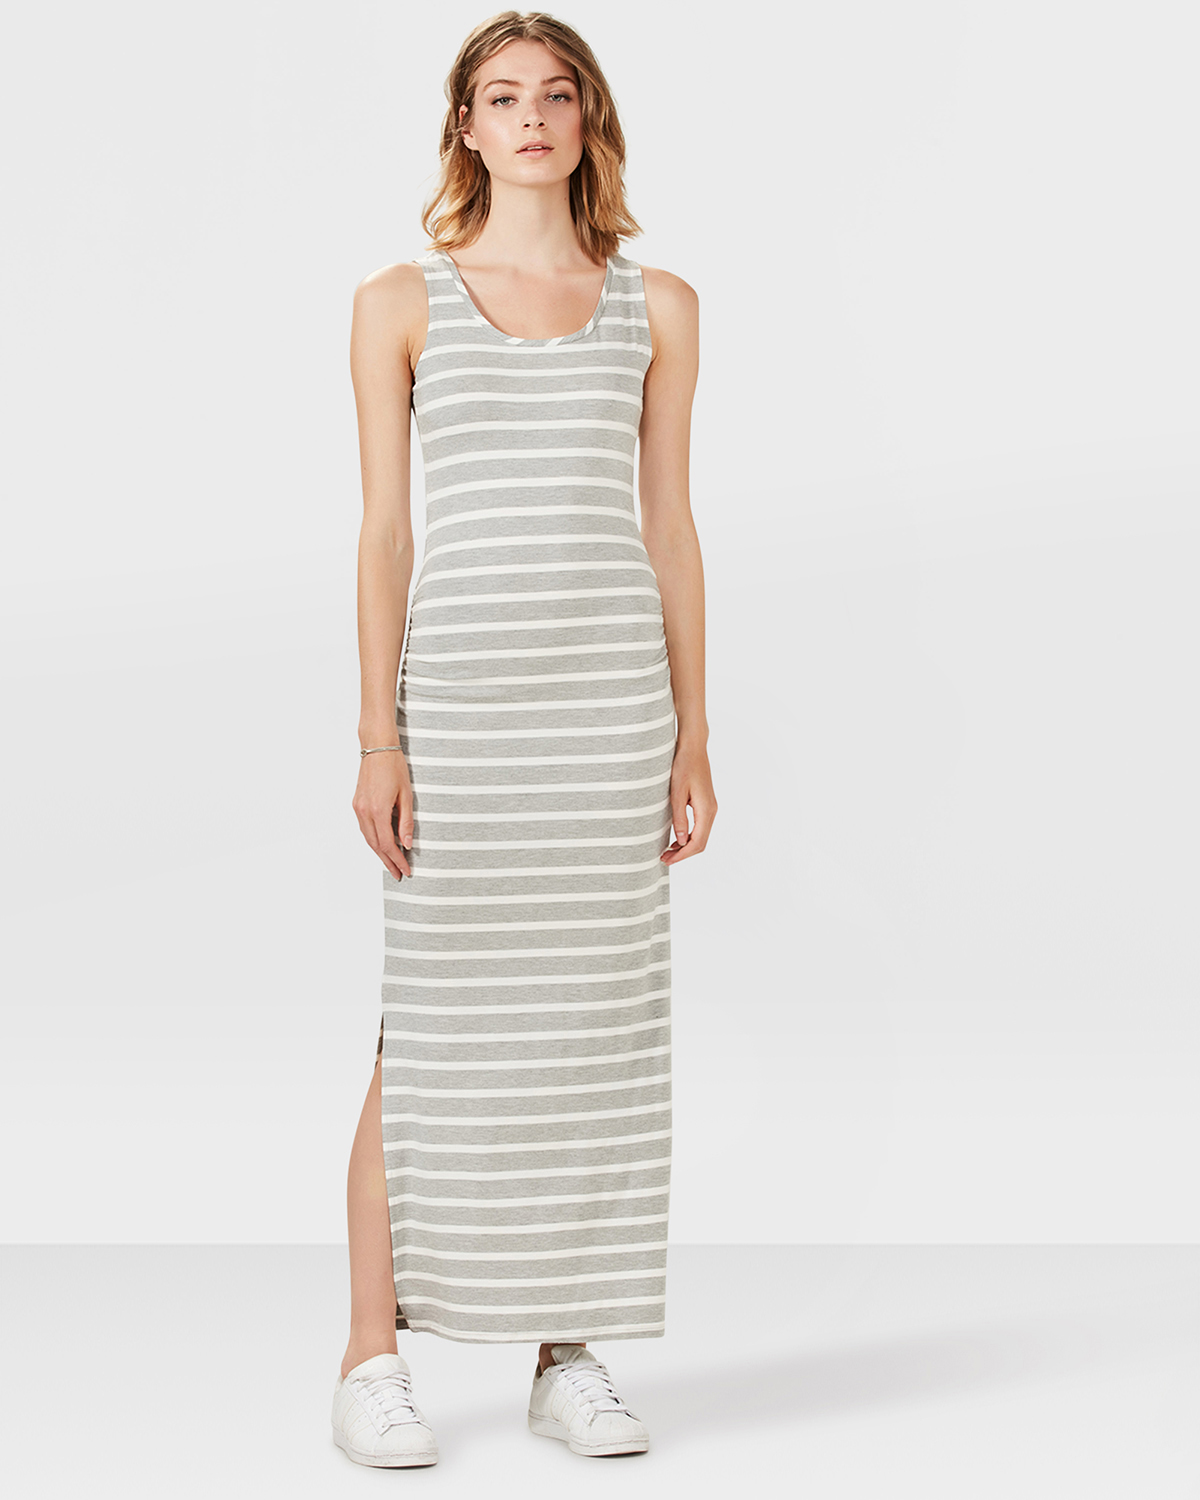 Maxi Jurk Grijs.Dames Maxi Stripe Jurk 79330251 We Fashion